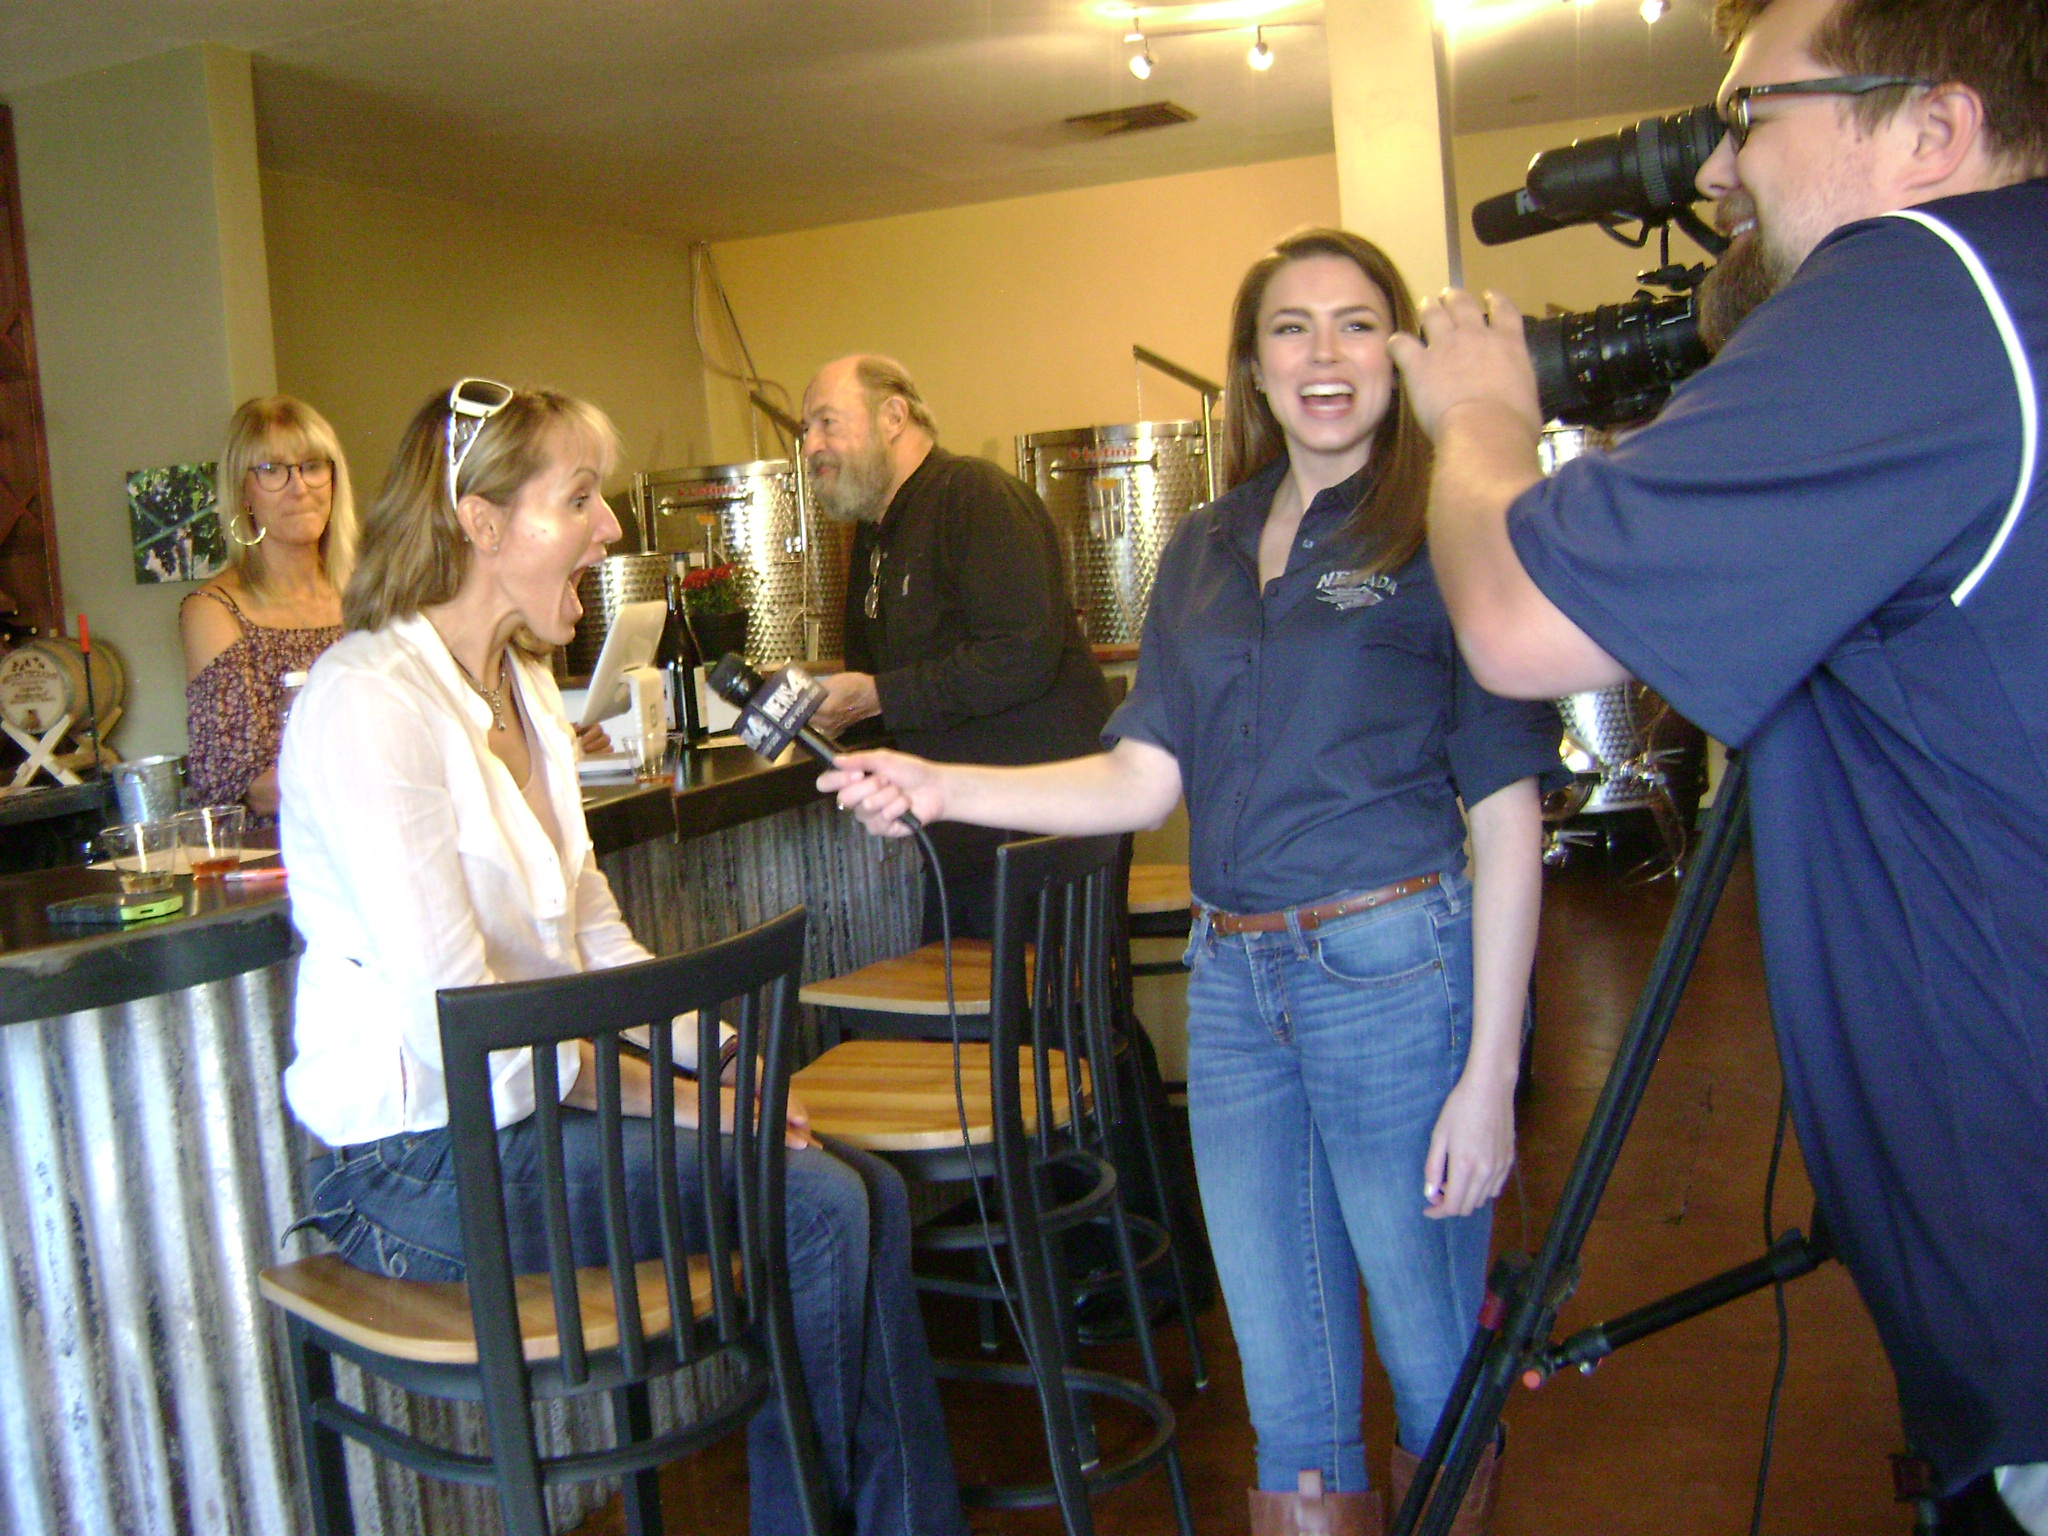 A television crew interviews a patron at the grand opening of Nevada Sunset Winery on September 15. Photo: @GrapeBasinNews